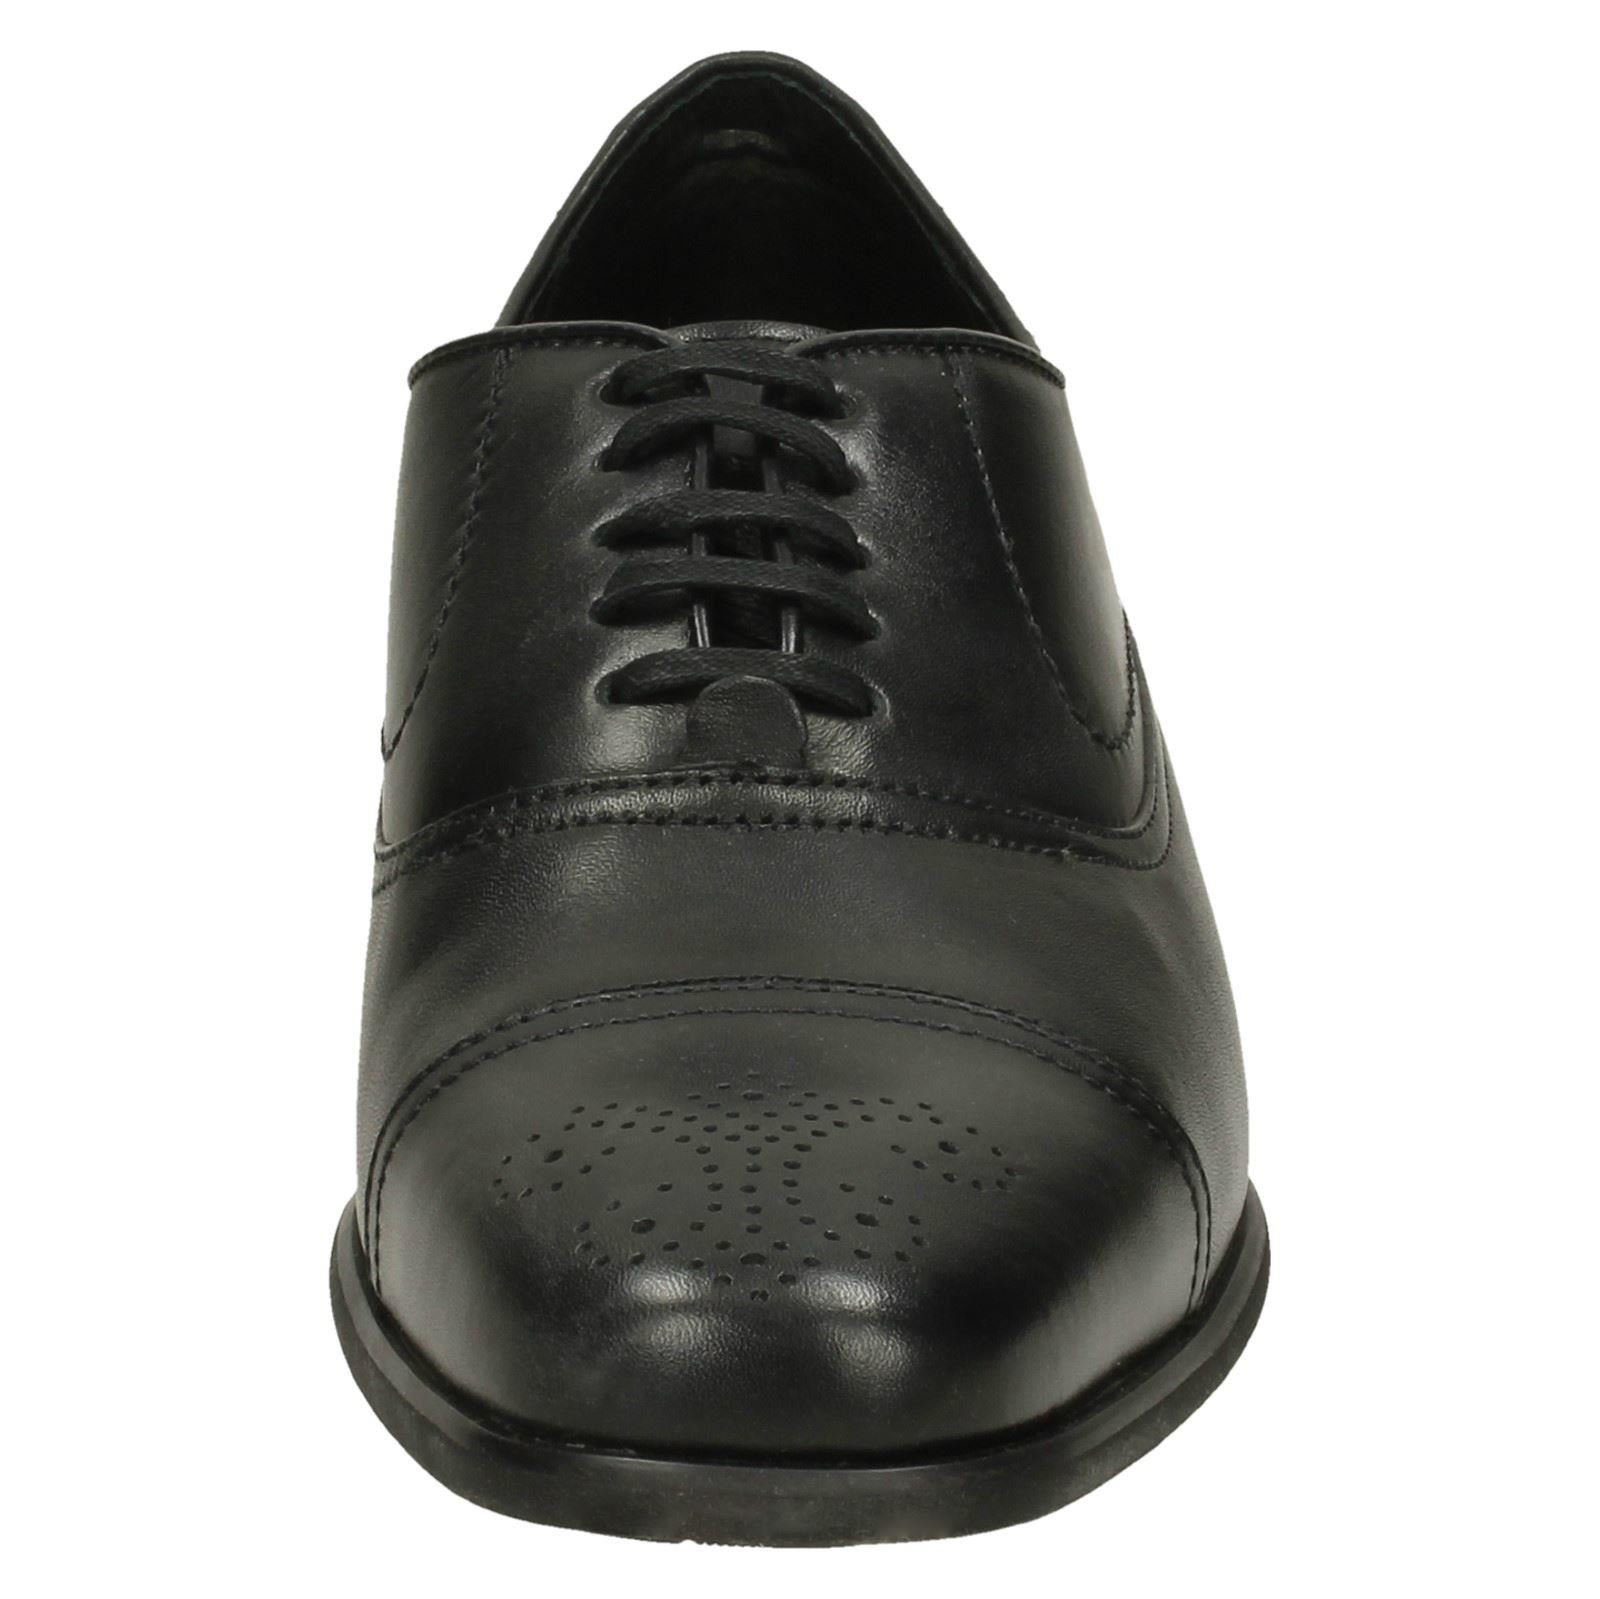 Mens Anatomic & Co Gel Technology Leather Lace Lace Lace Up Brogue Shoes - Escada - 989824 b19ed1